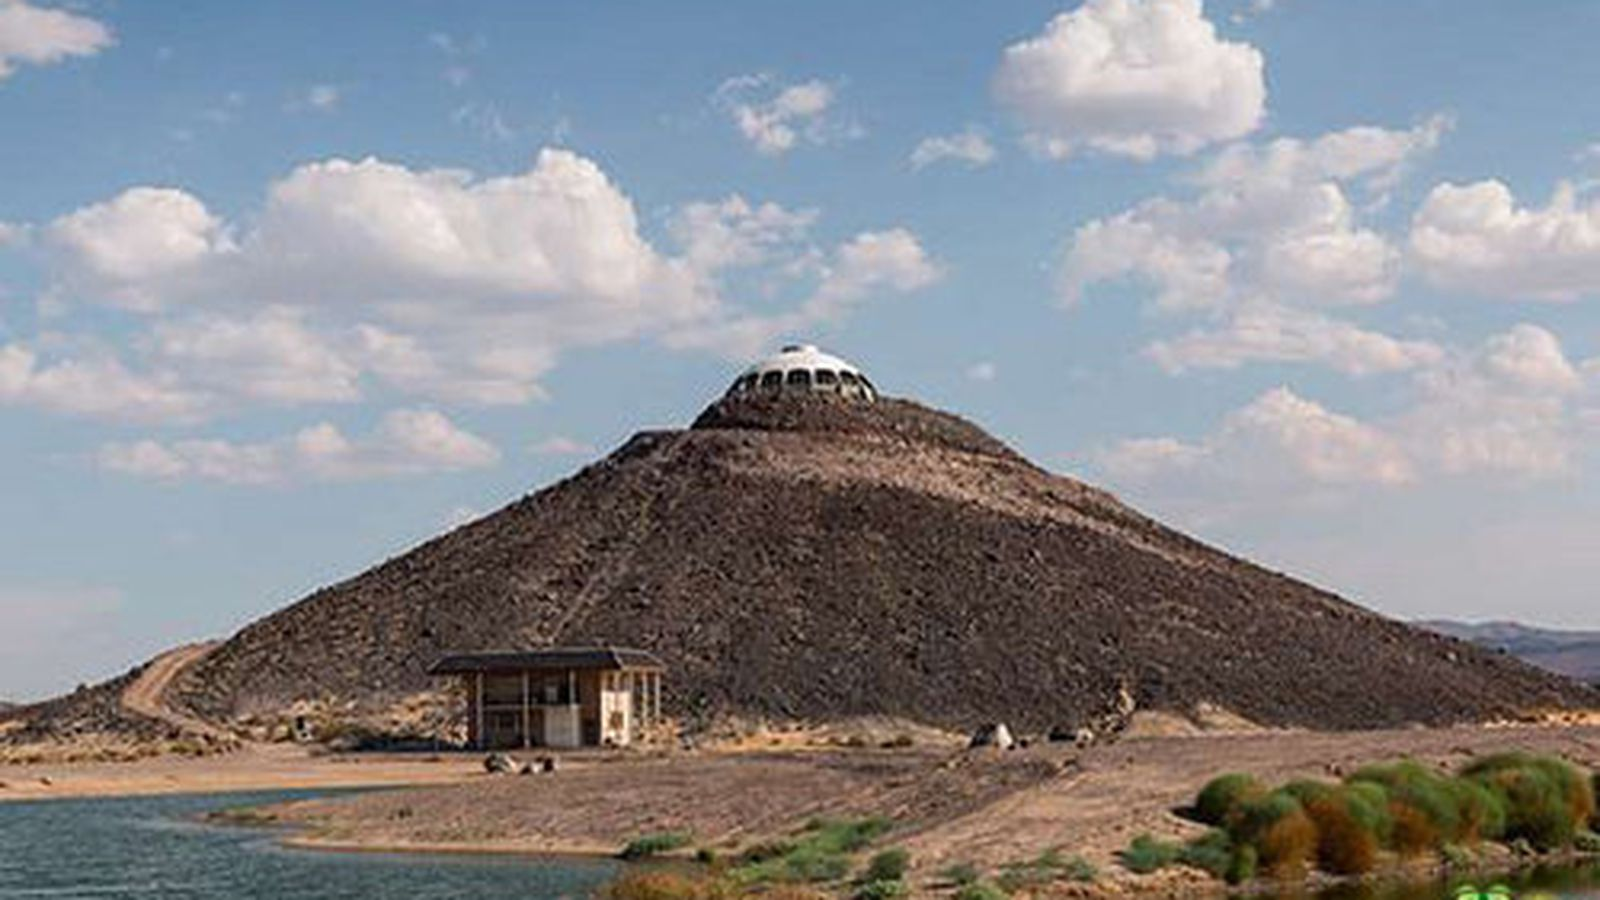 Huell Howser S Volcano Top Saucer House In The Mojave